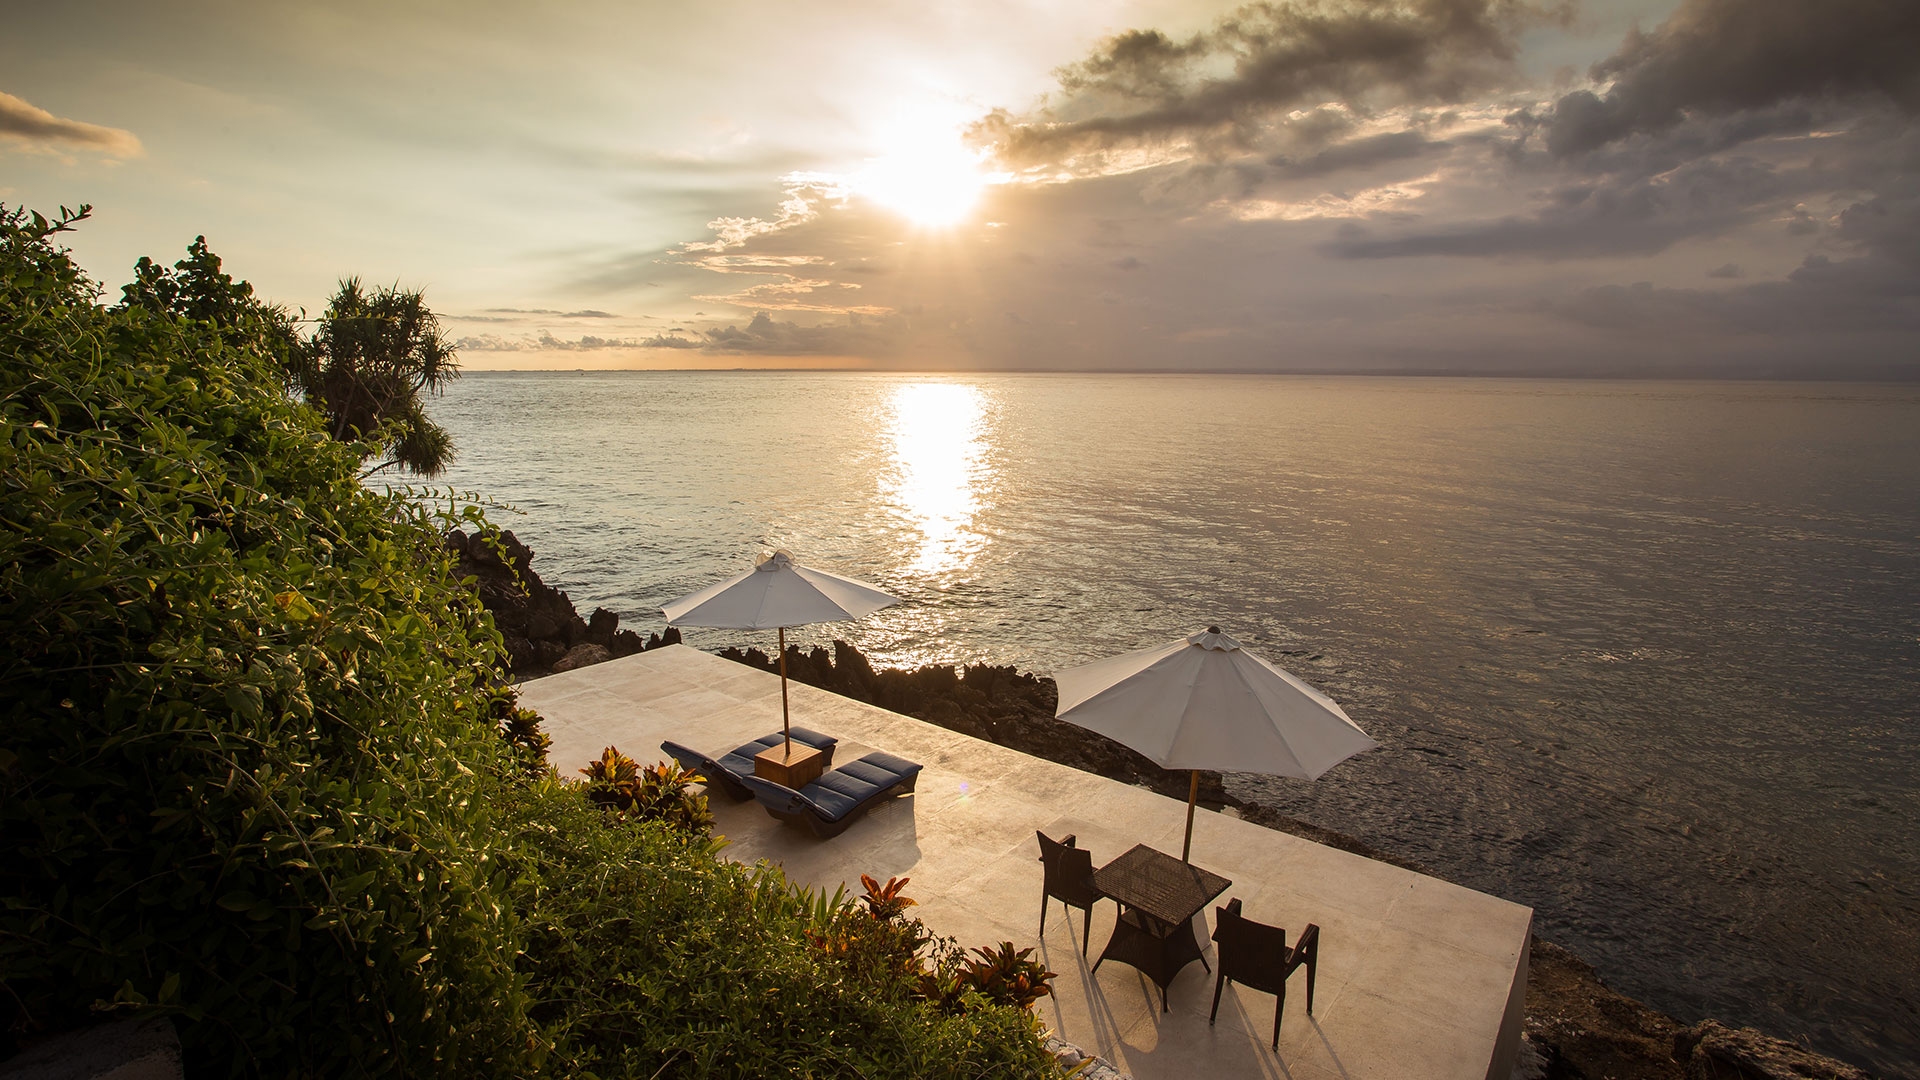 One of the best resort in Lembongan – Bali need some perfect photograph after several renovations then we came...